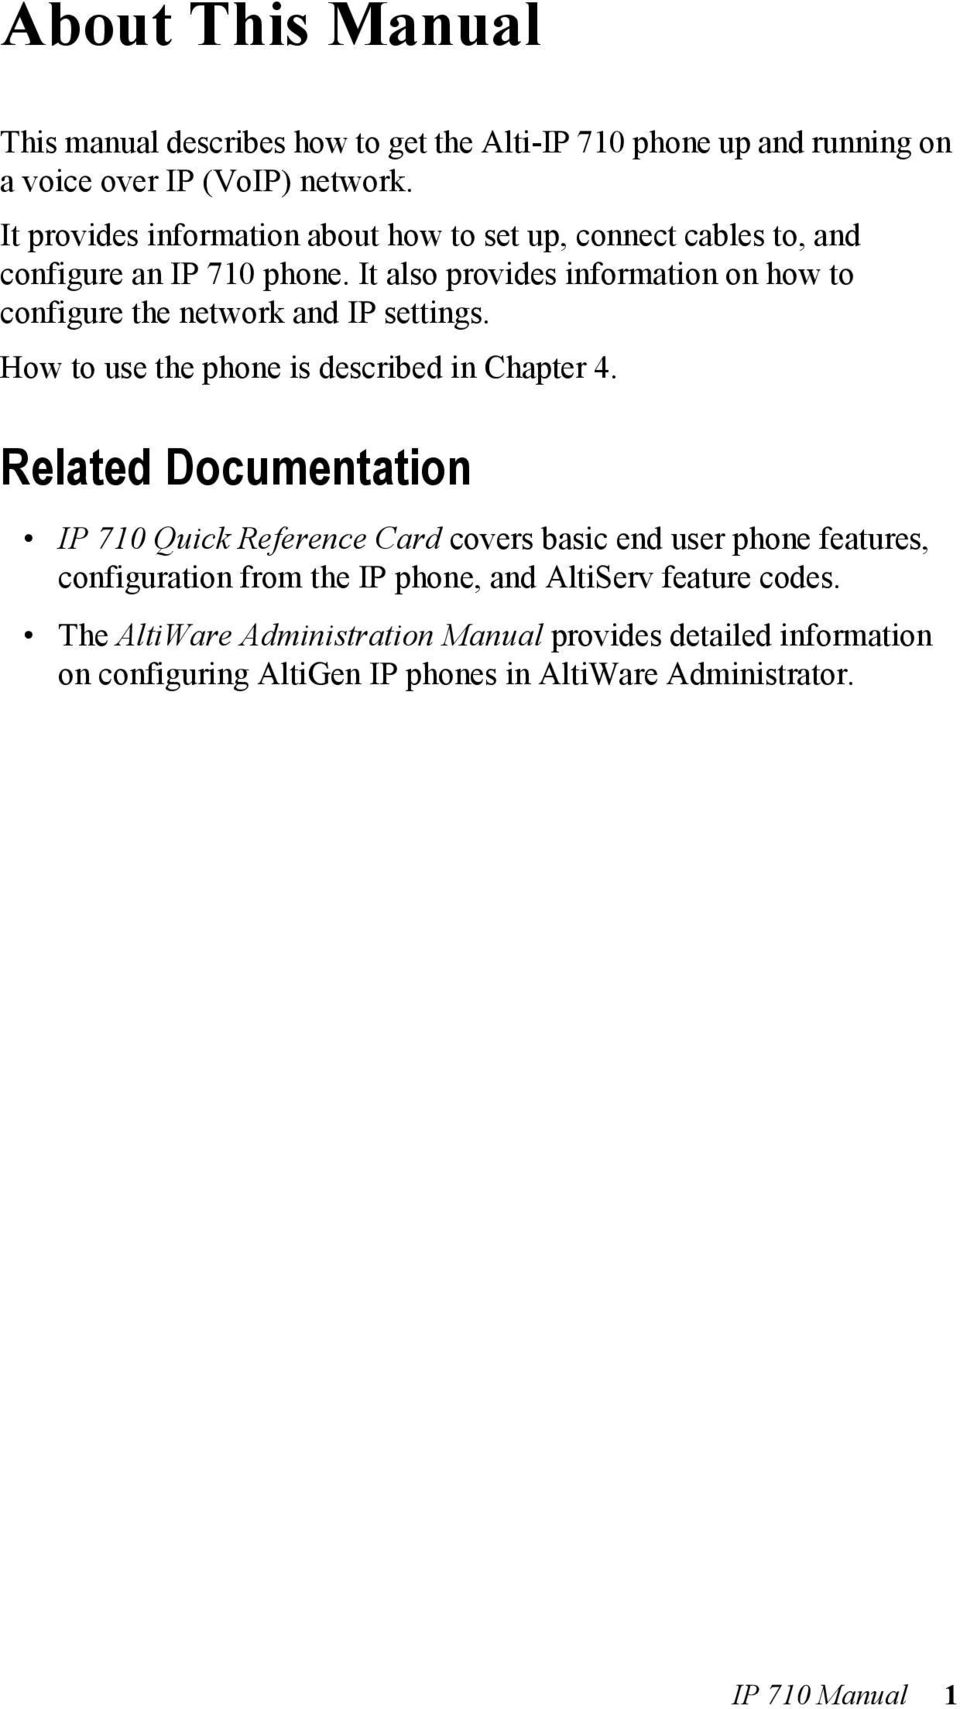 It also provides information on how to configure the network and IP settings. How to use the phone is described in Chapter 4.